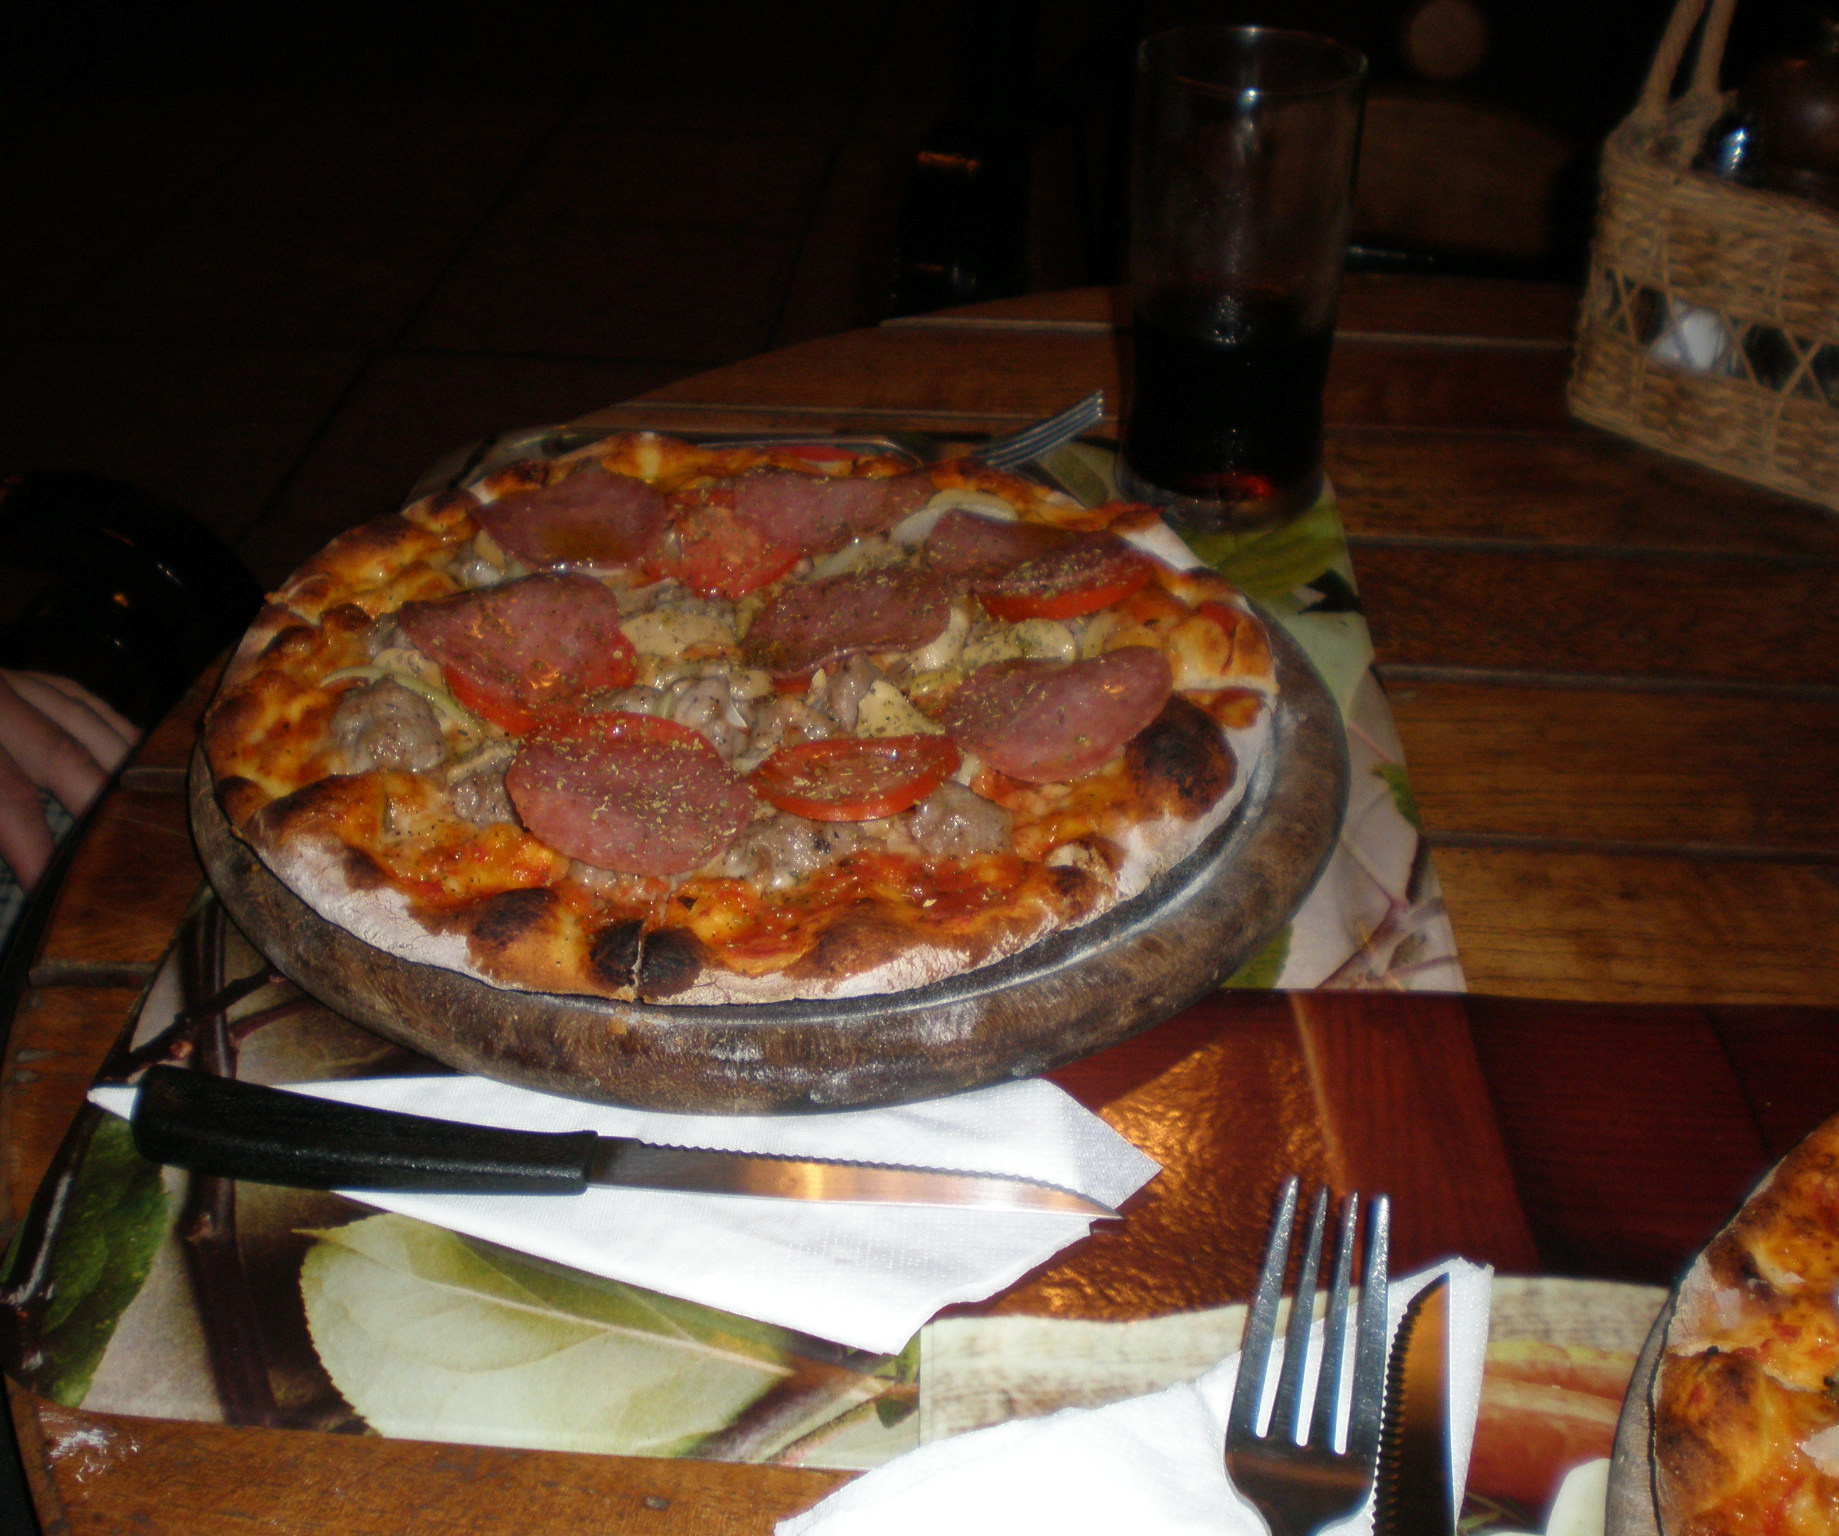 pizza in thailand - at udon thani pizzeria